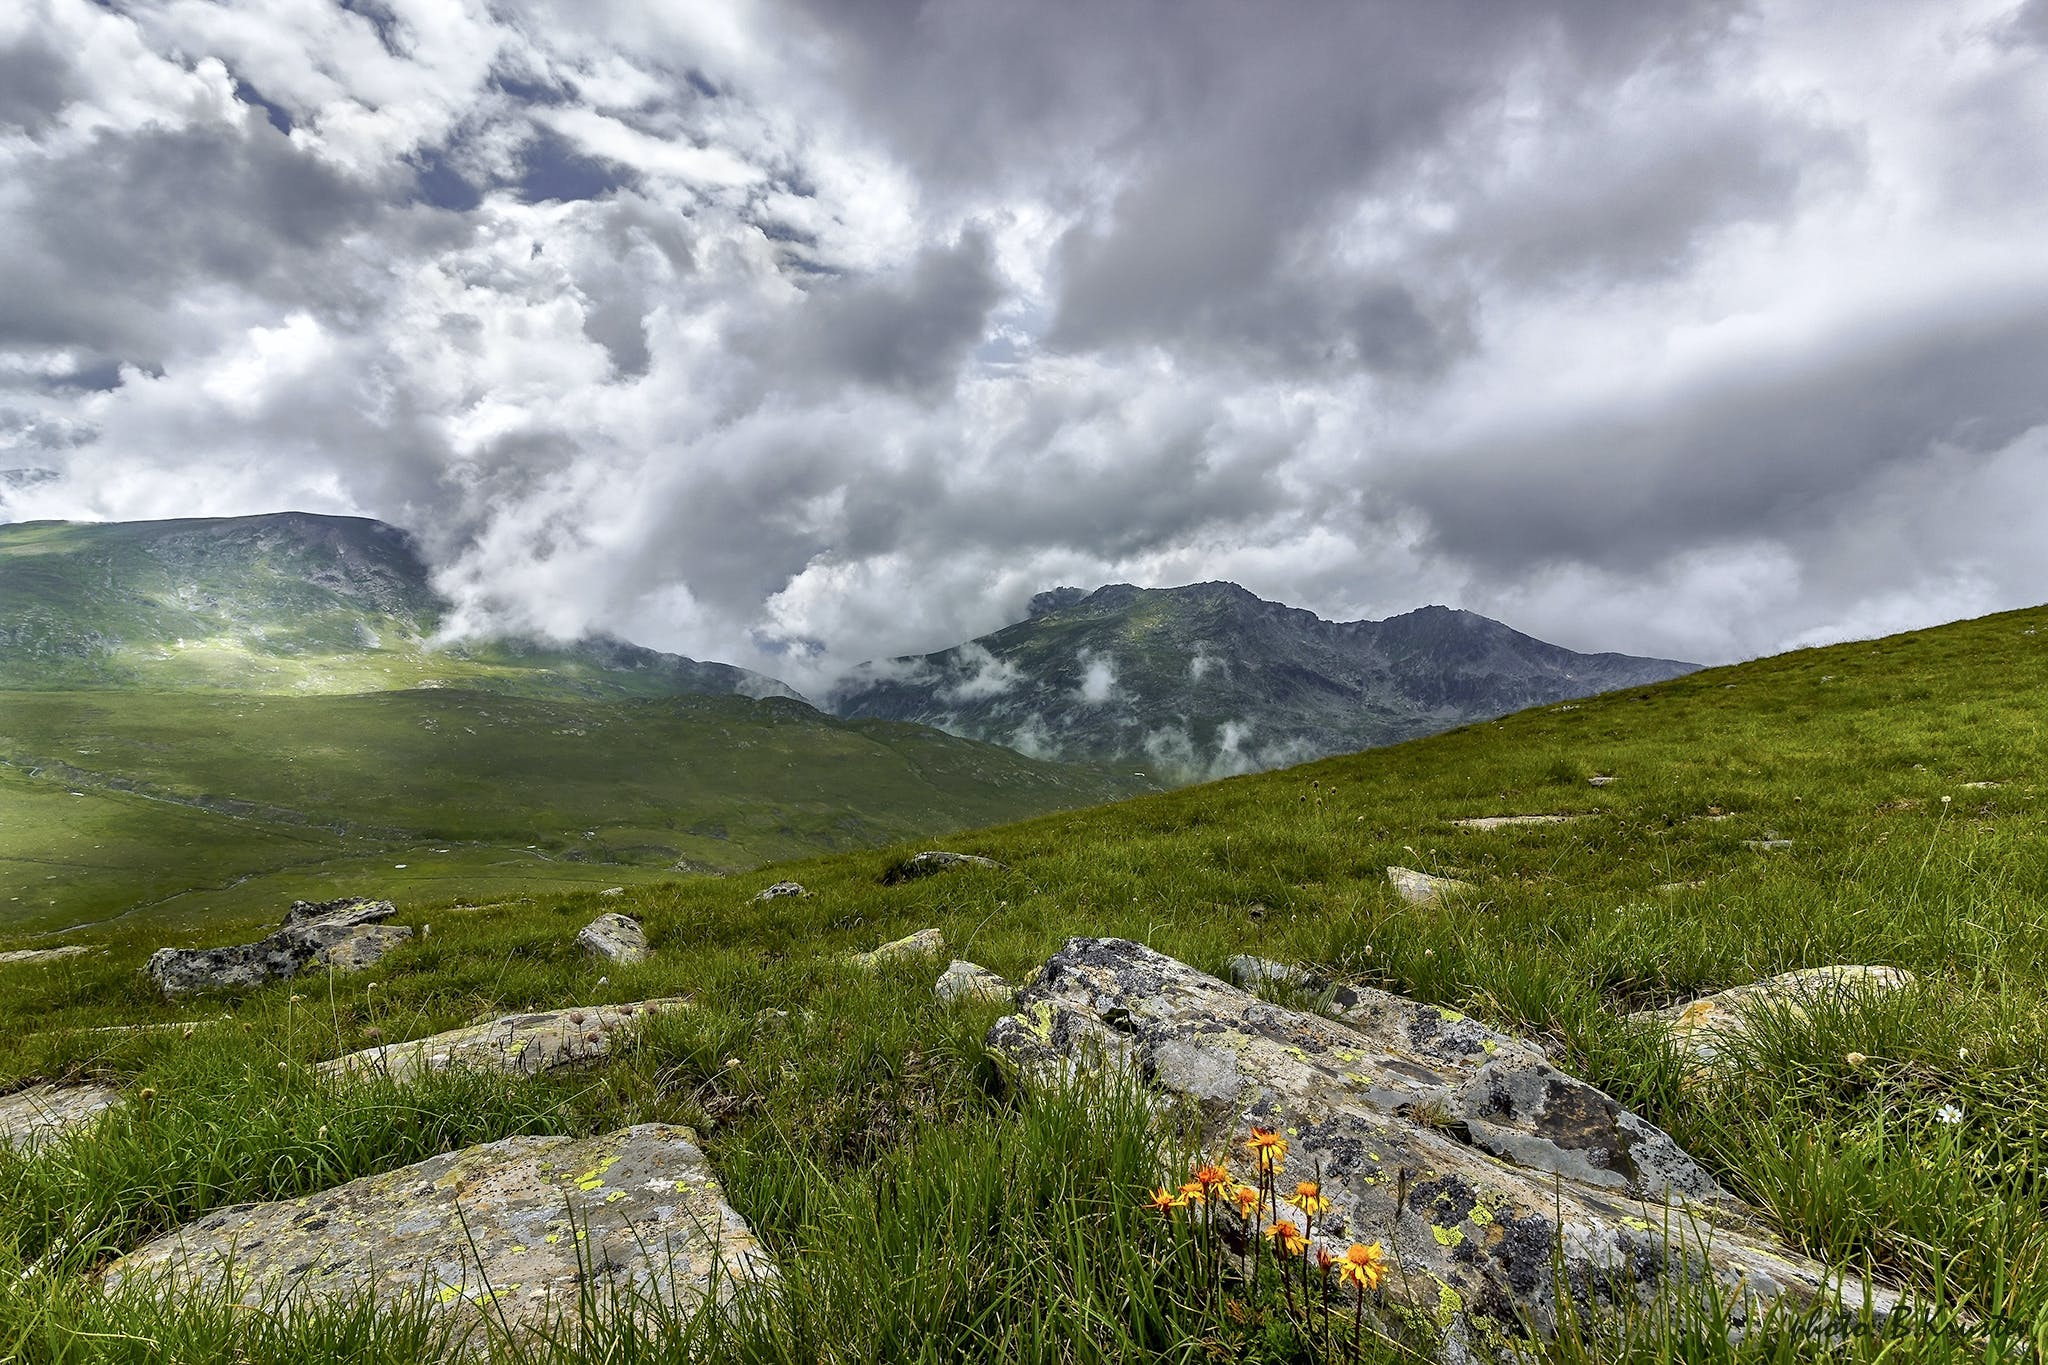 Green Grass Field With Rocks Near Mountains during Cloudy Daytime Sky